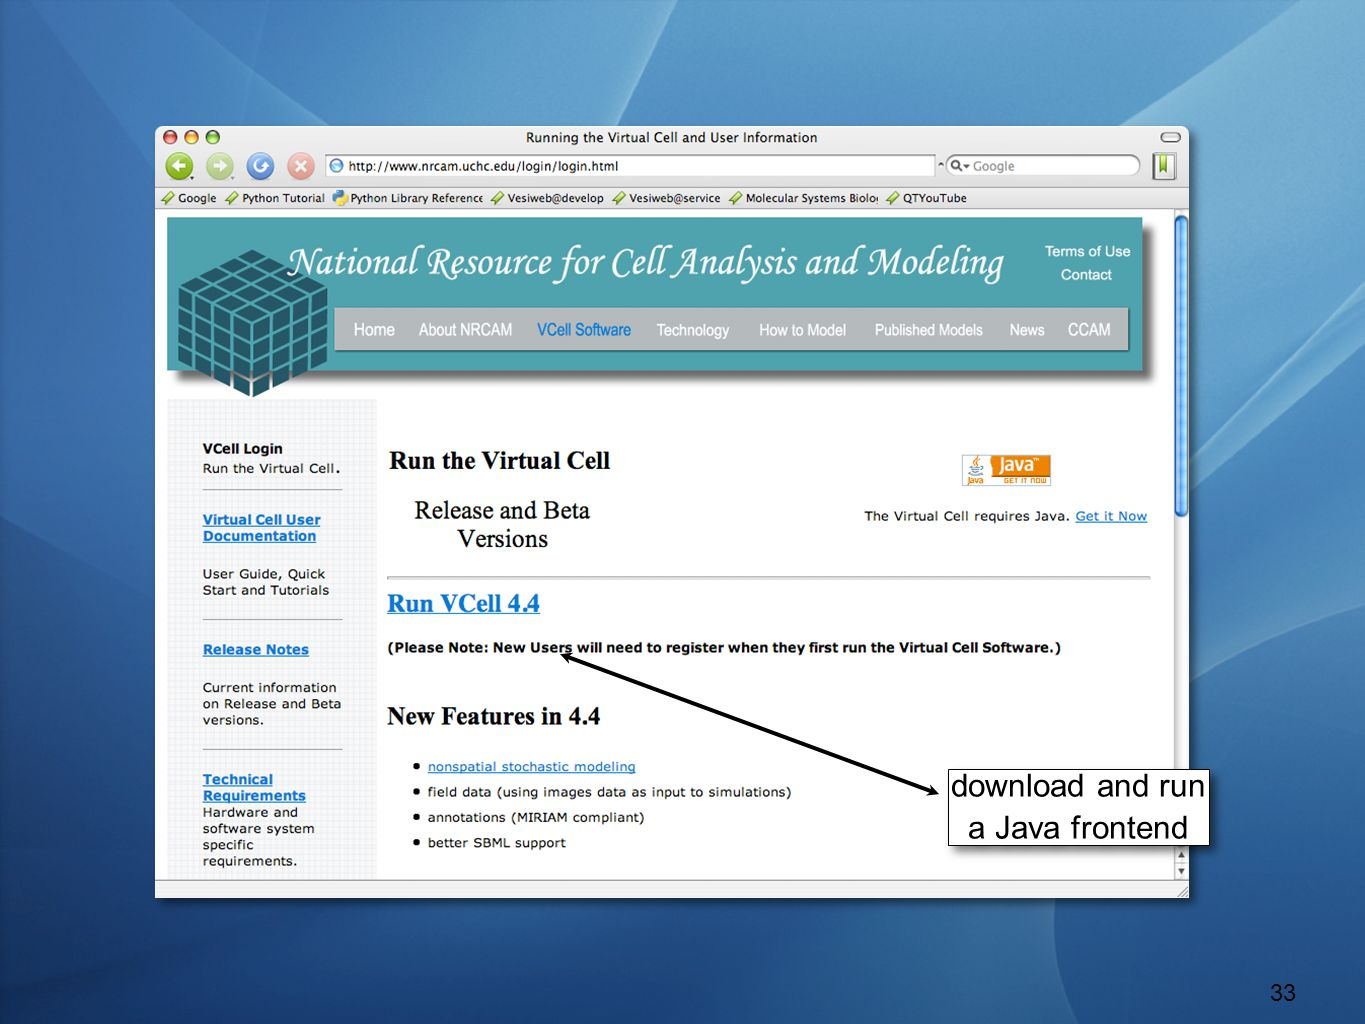 The Virtual Cell download and run a Java frontend 33